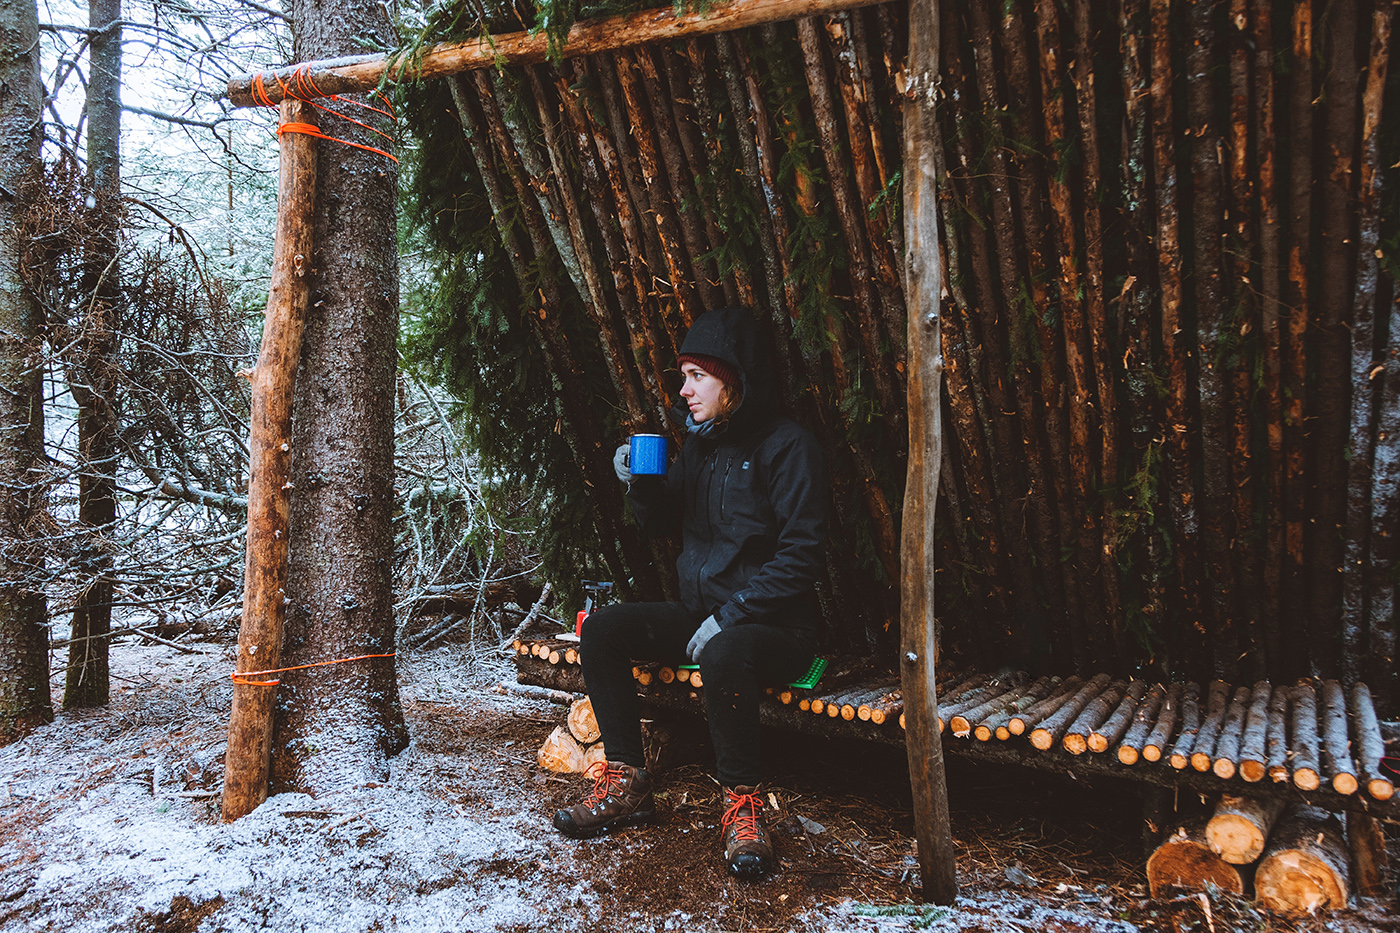 Woman sits in a lean to shelter made from logs and spruce boughs. She is drinking a cup of tea and there is snow on the ground.